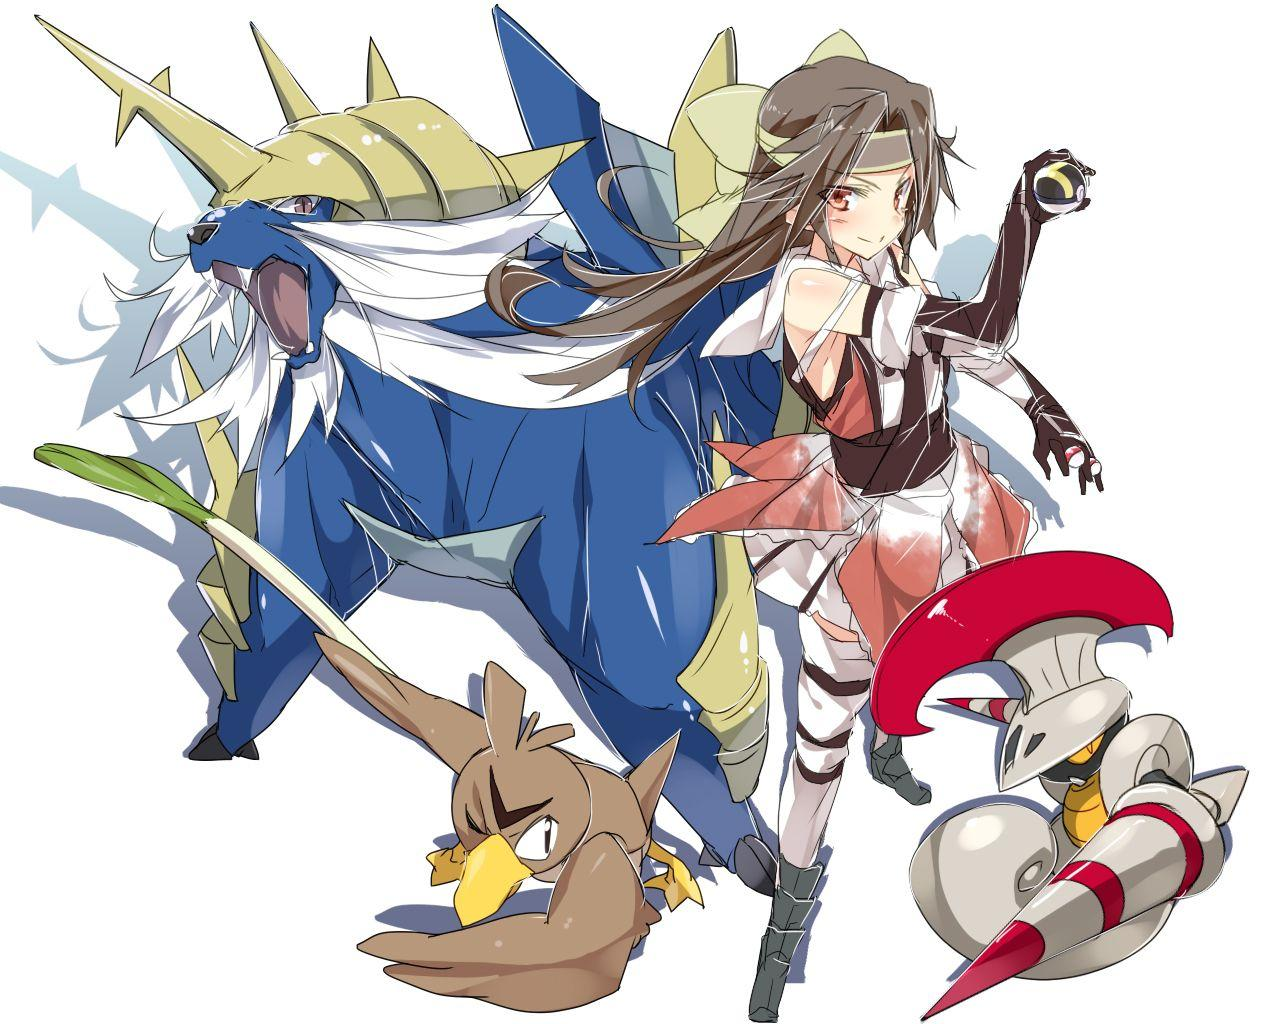 escavalier, farfetch'd, jintsuu, and samurott